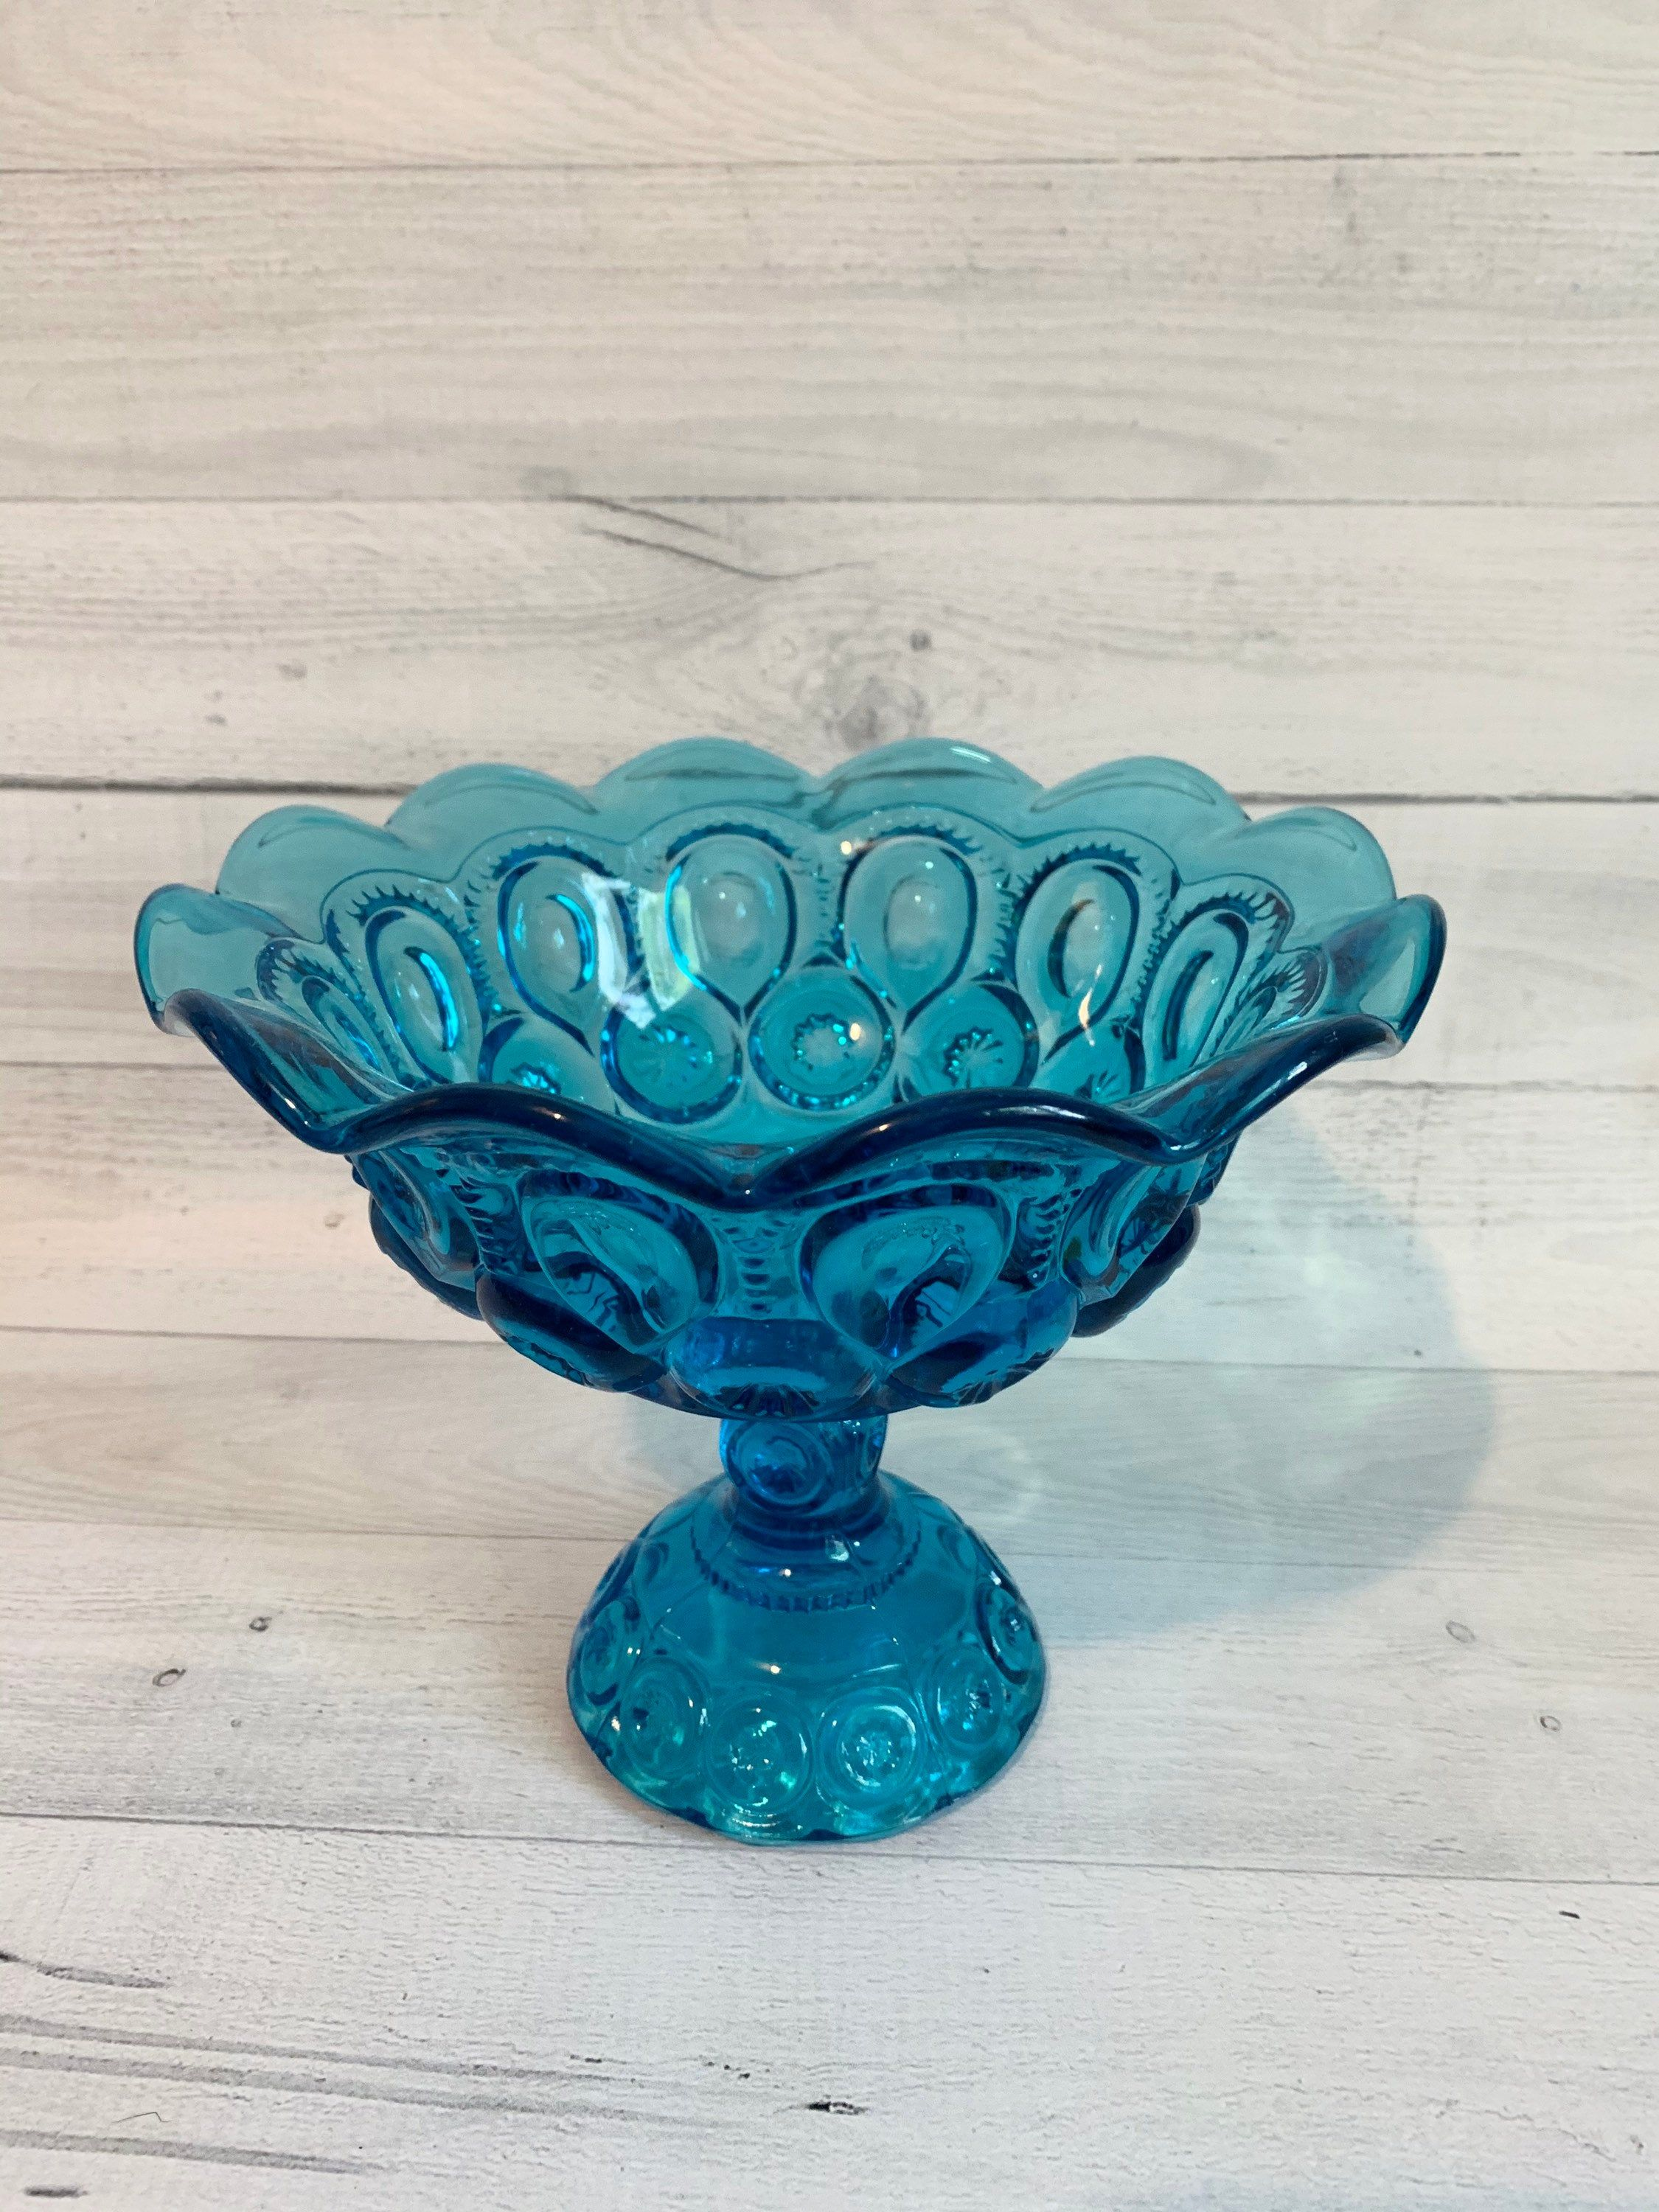 Blue moon and stars compote pedestal bowl le smith moon